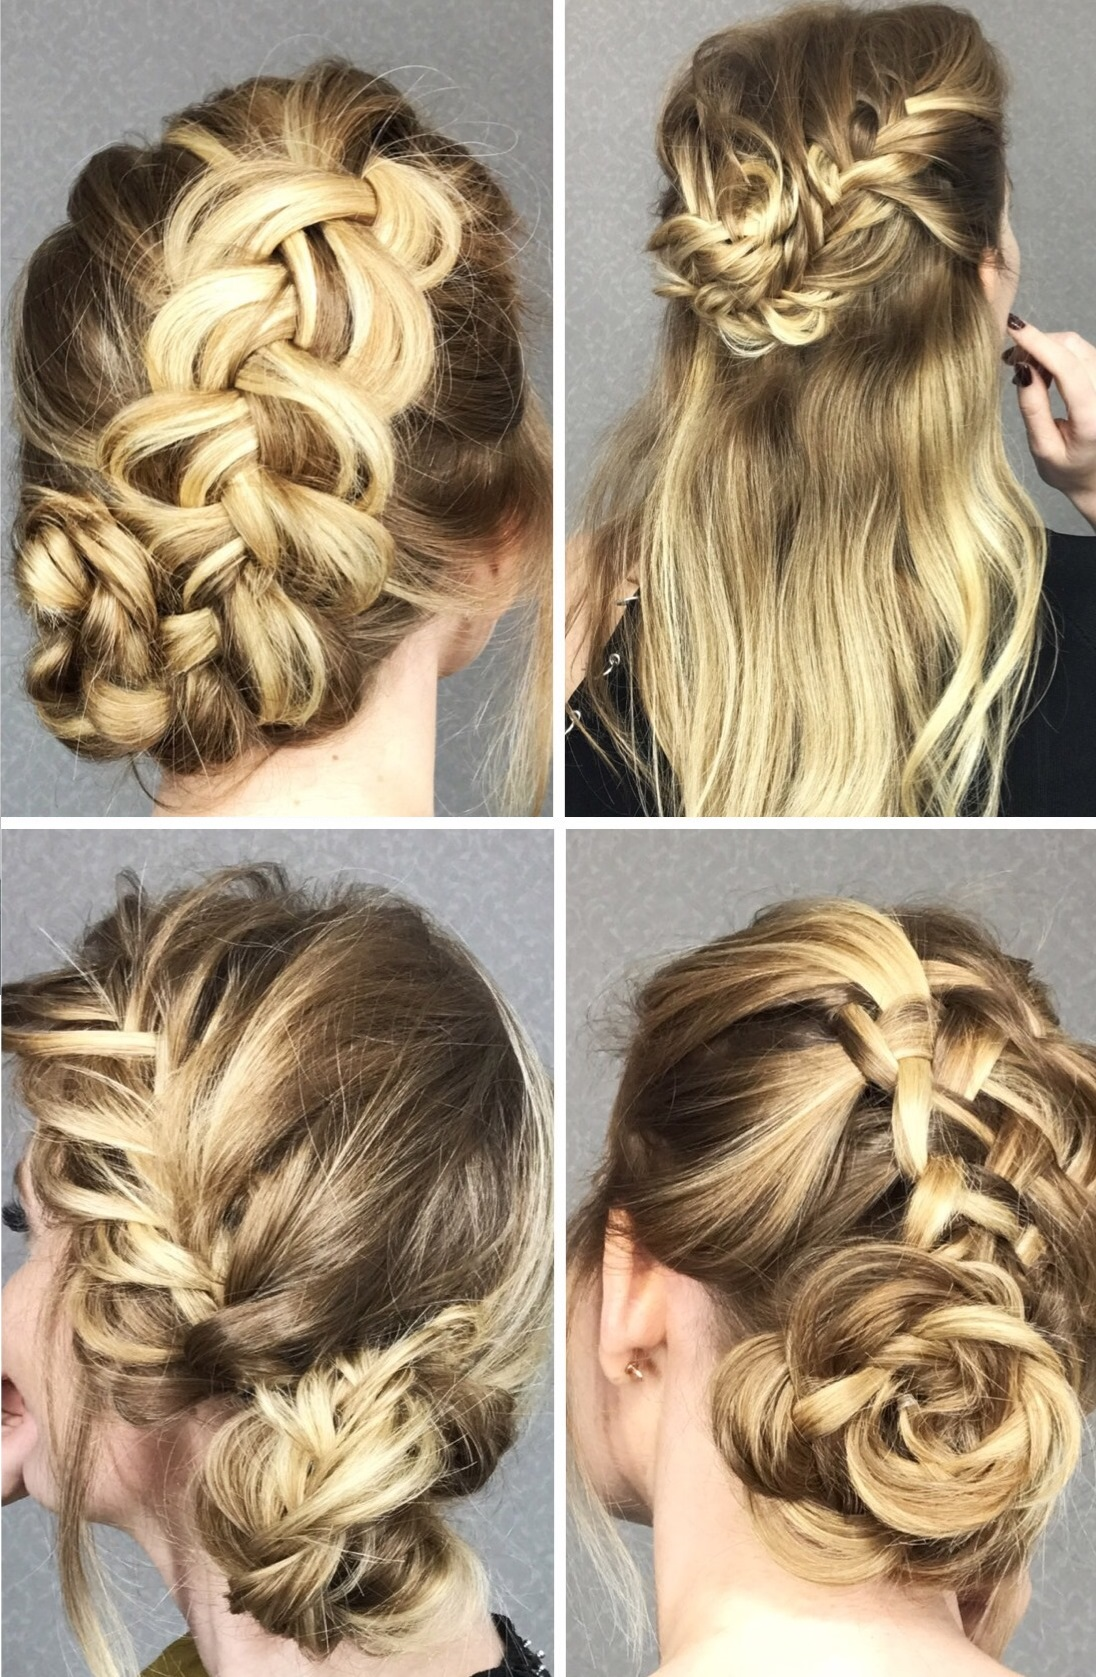 4 Cute Braided Hairstyles In Easy Step By Step Tutorials